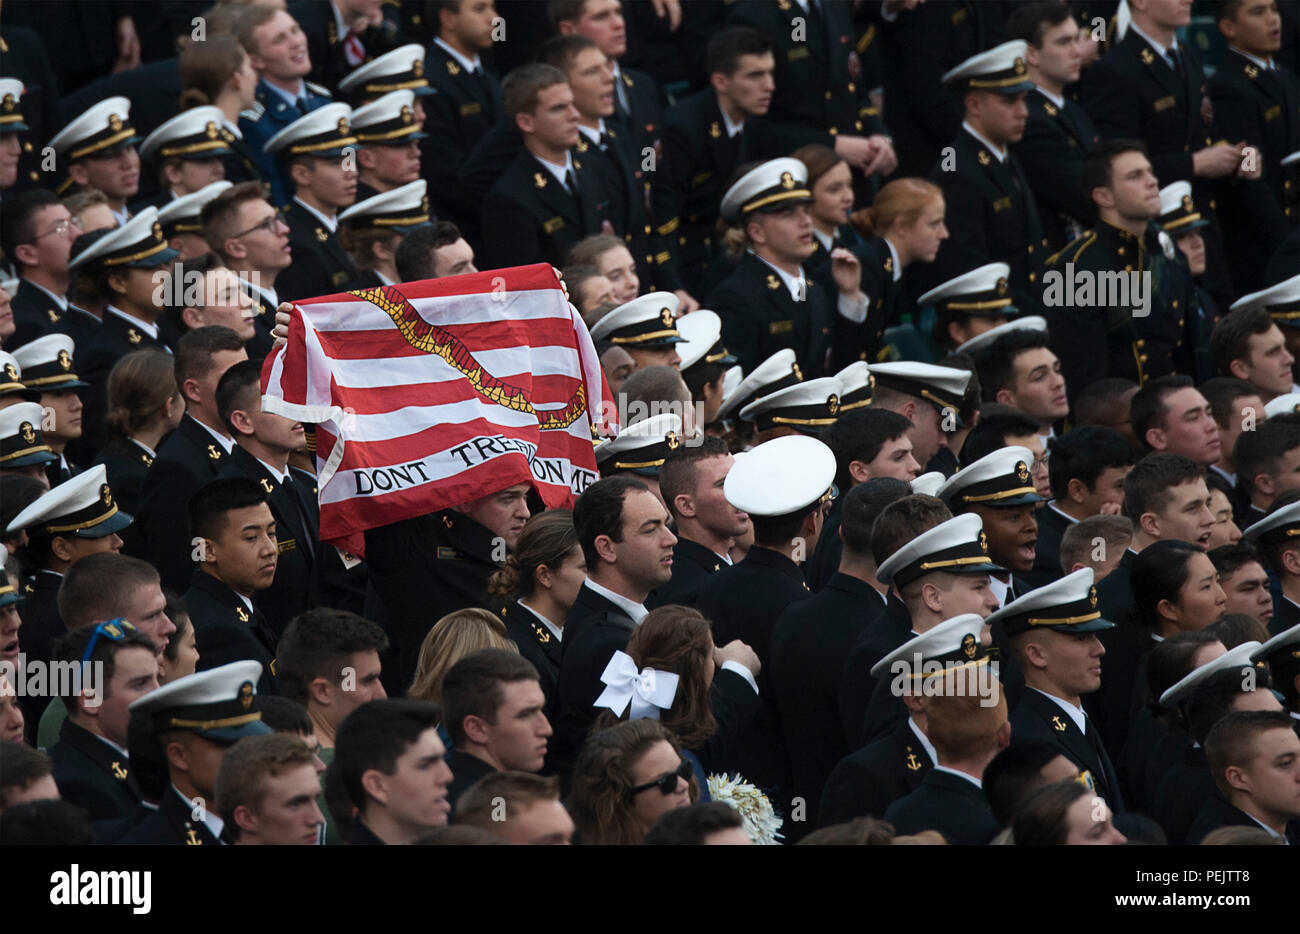 A Midshipman holds up the